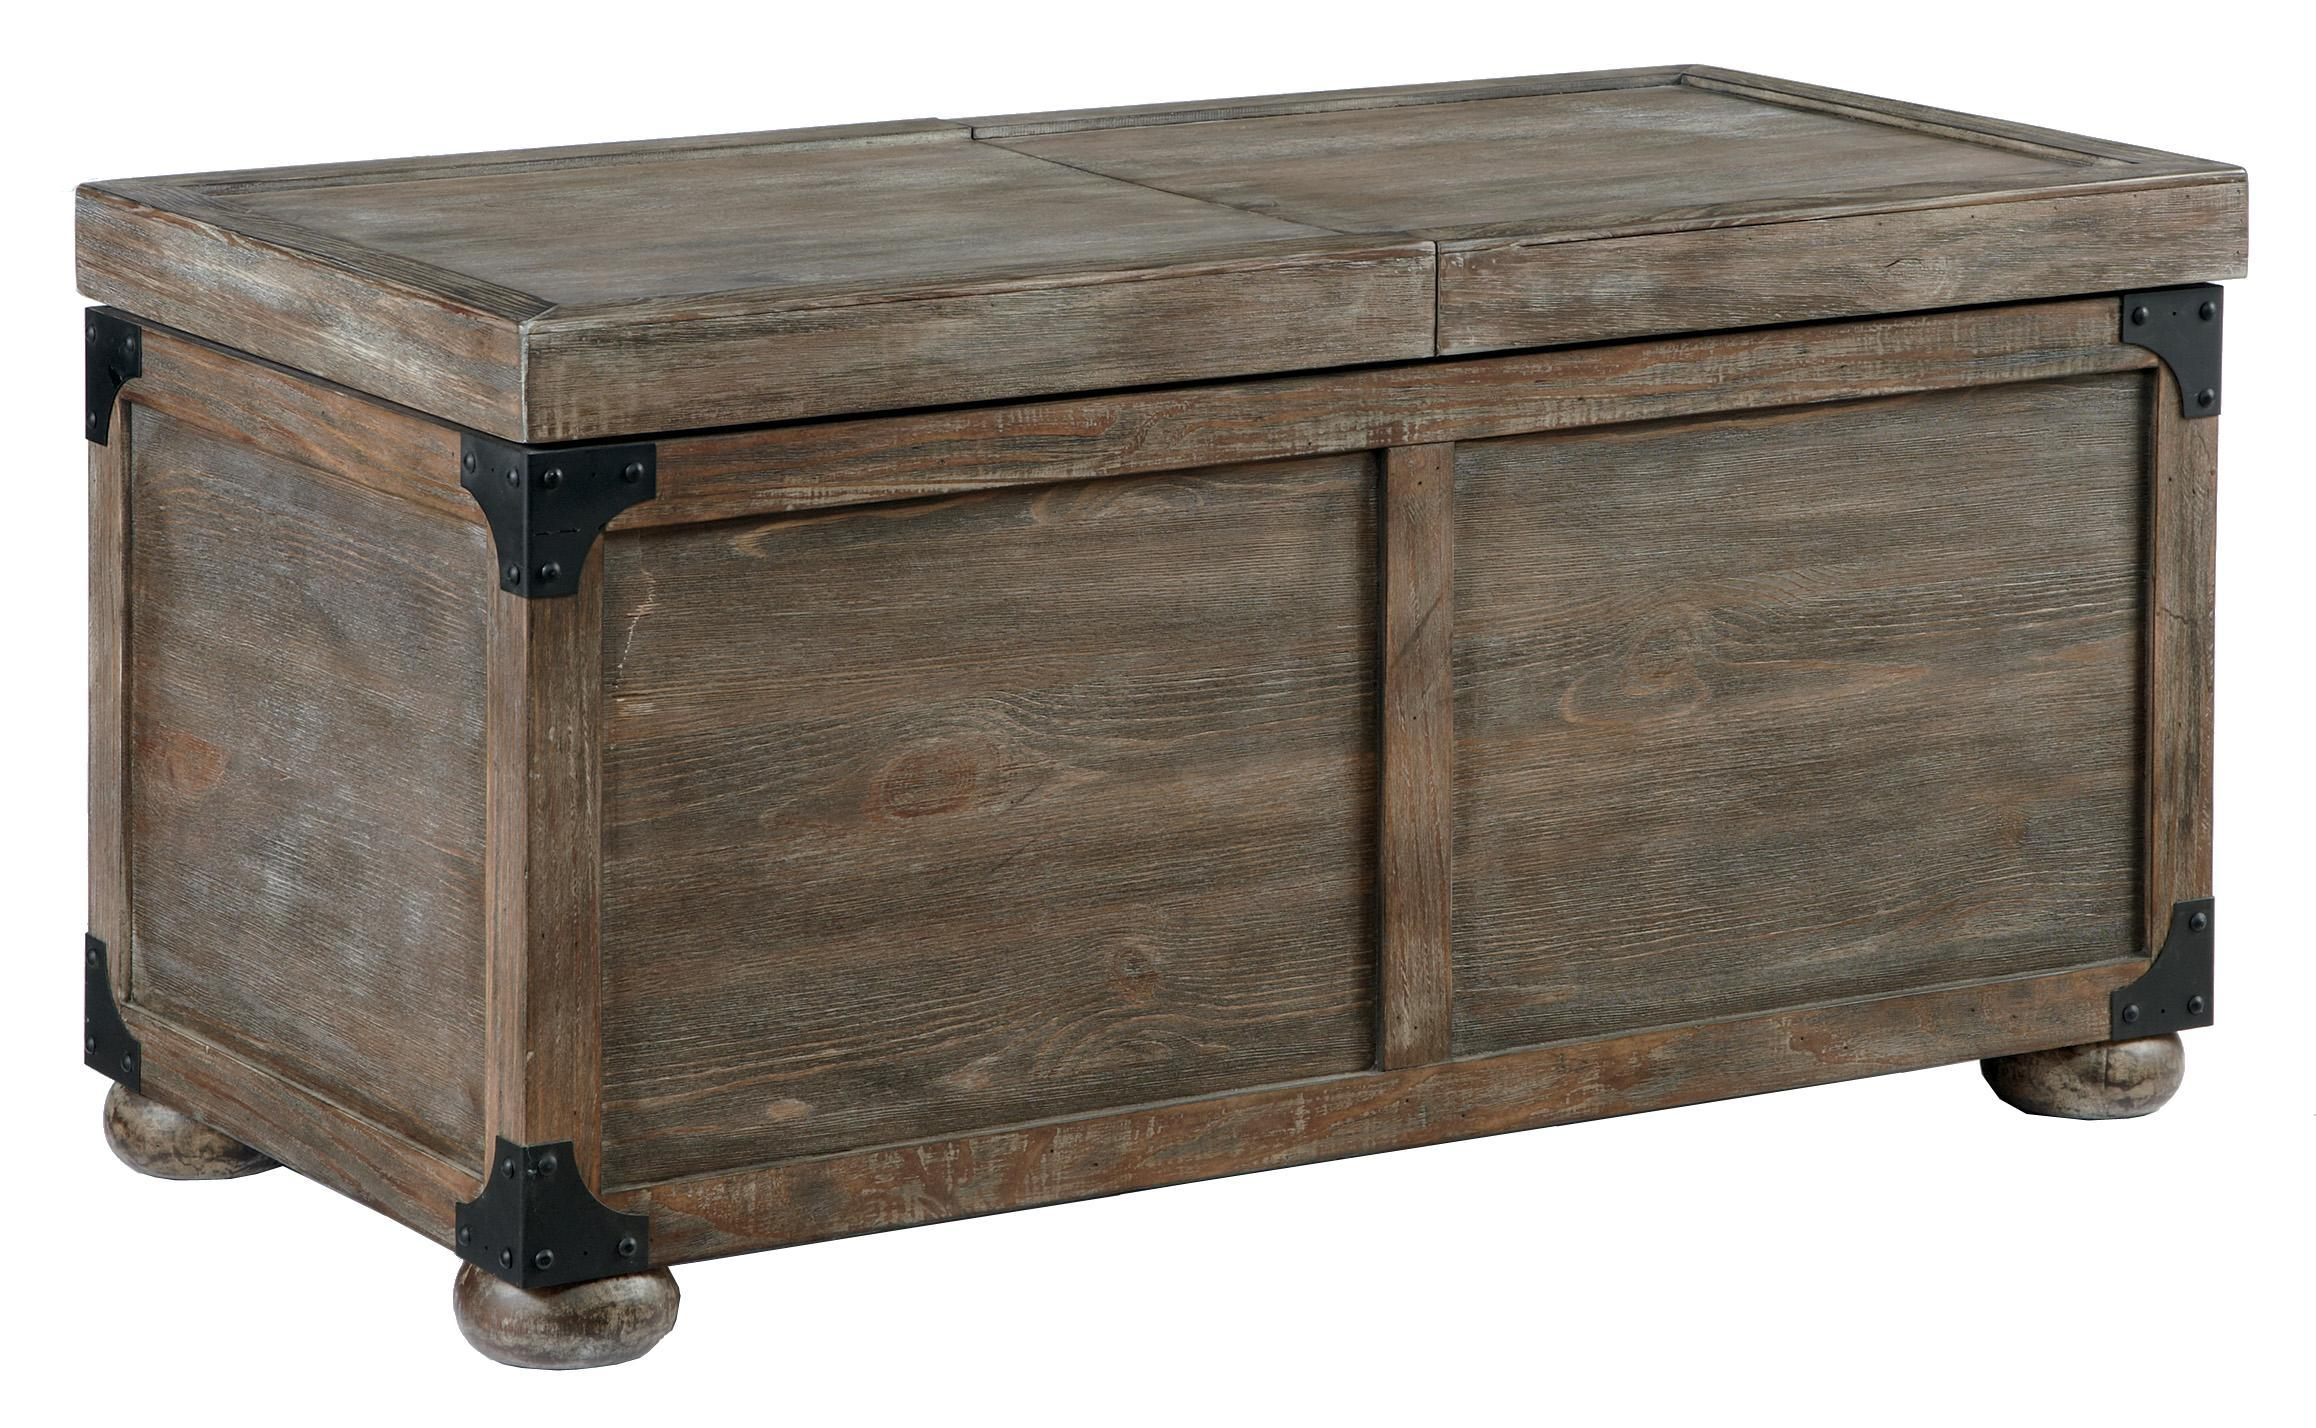 Rustic Accents Trunk Style Rustic Storage Cocktail Table From